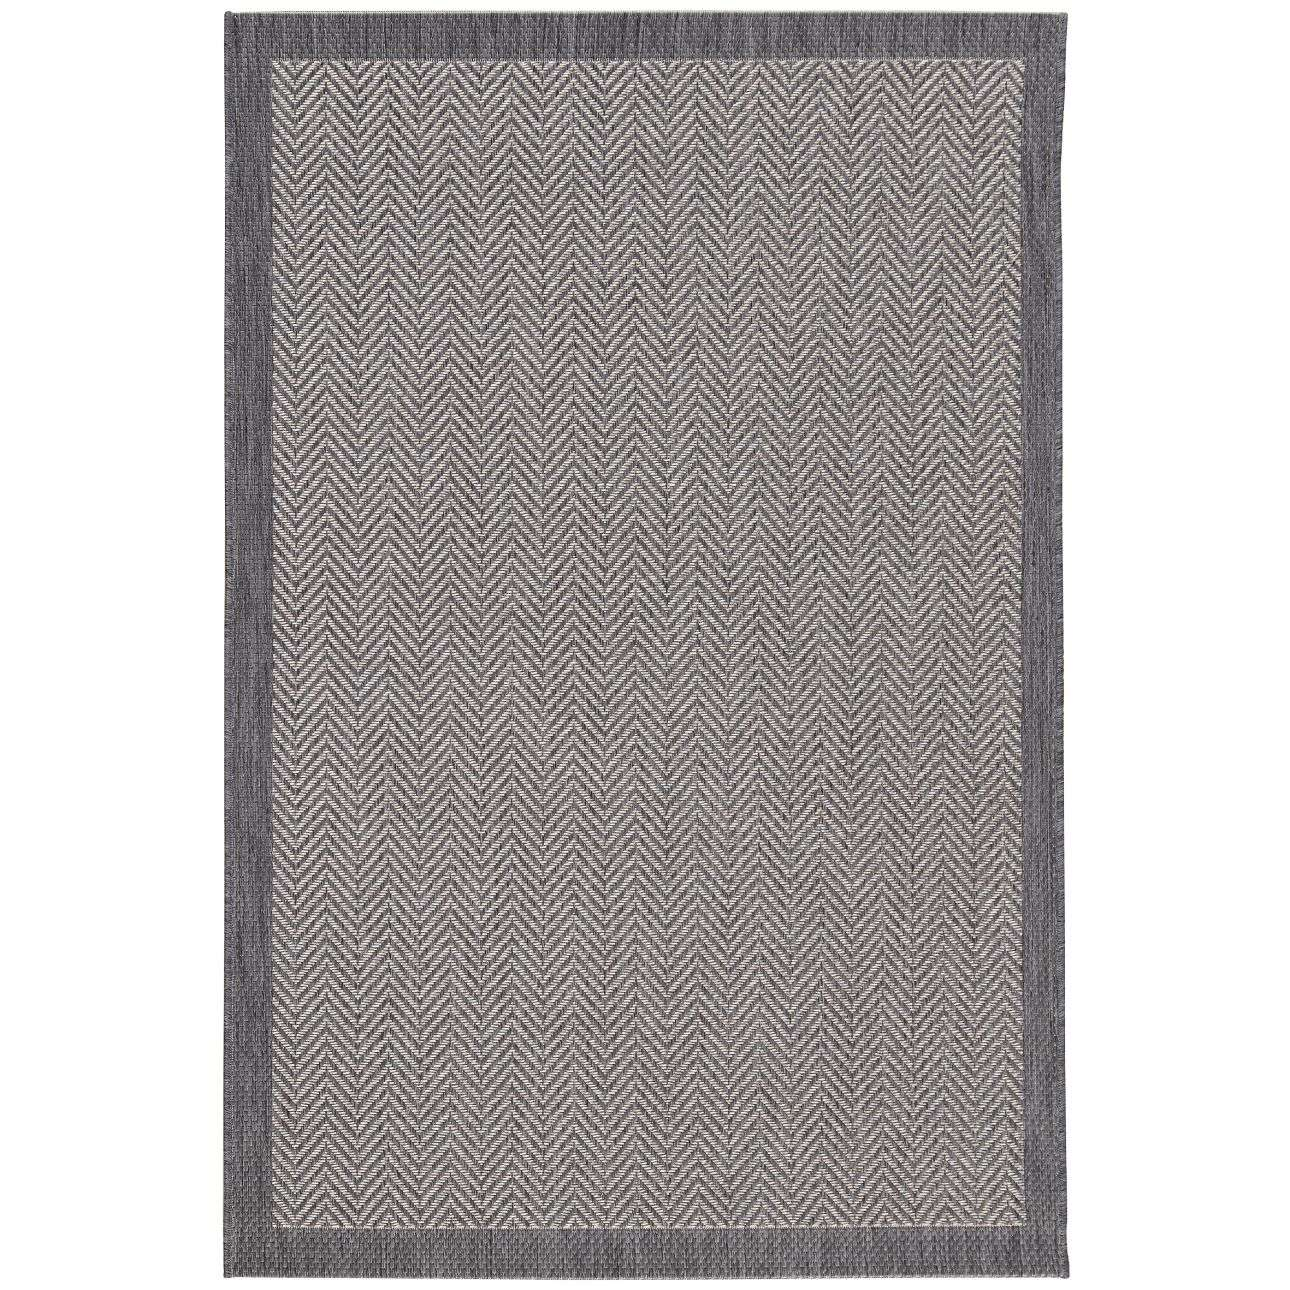 Breeze Cliff Grey Area Rug 160x230cm